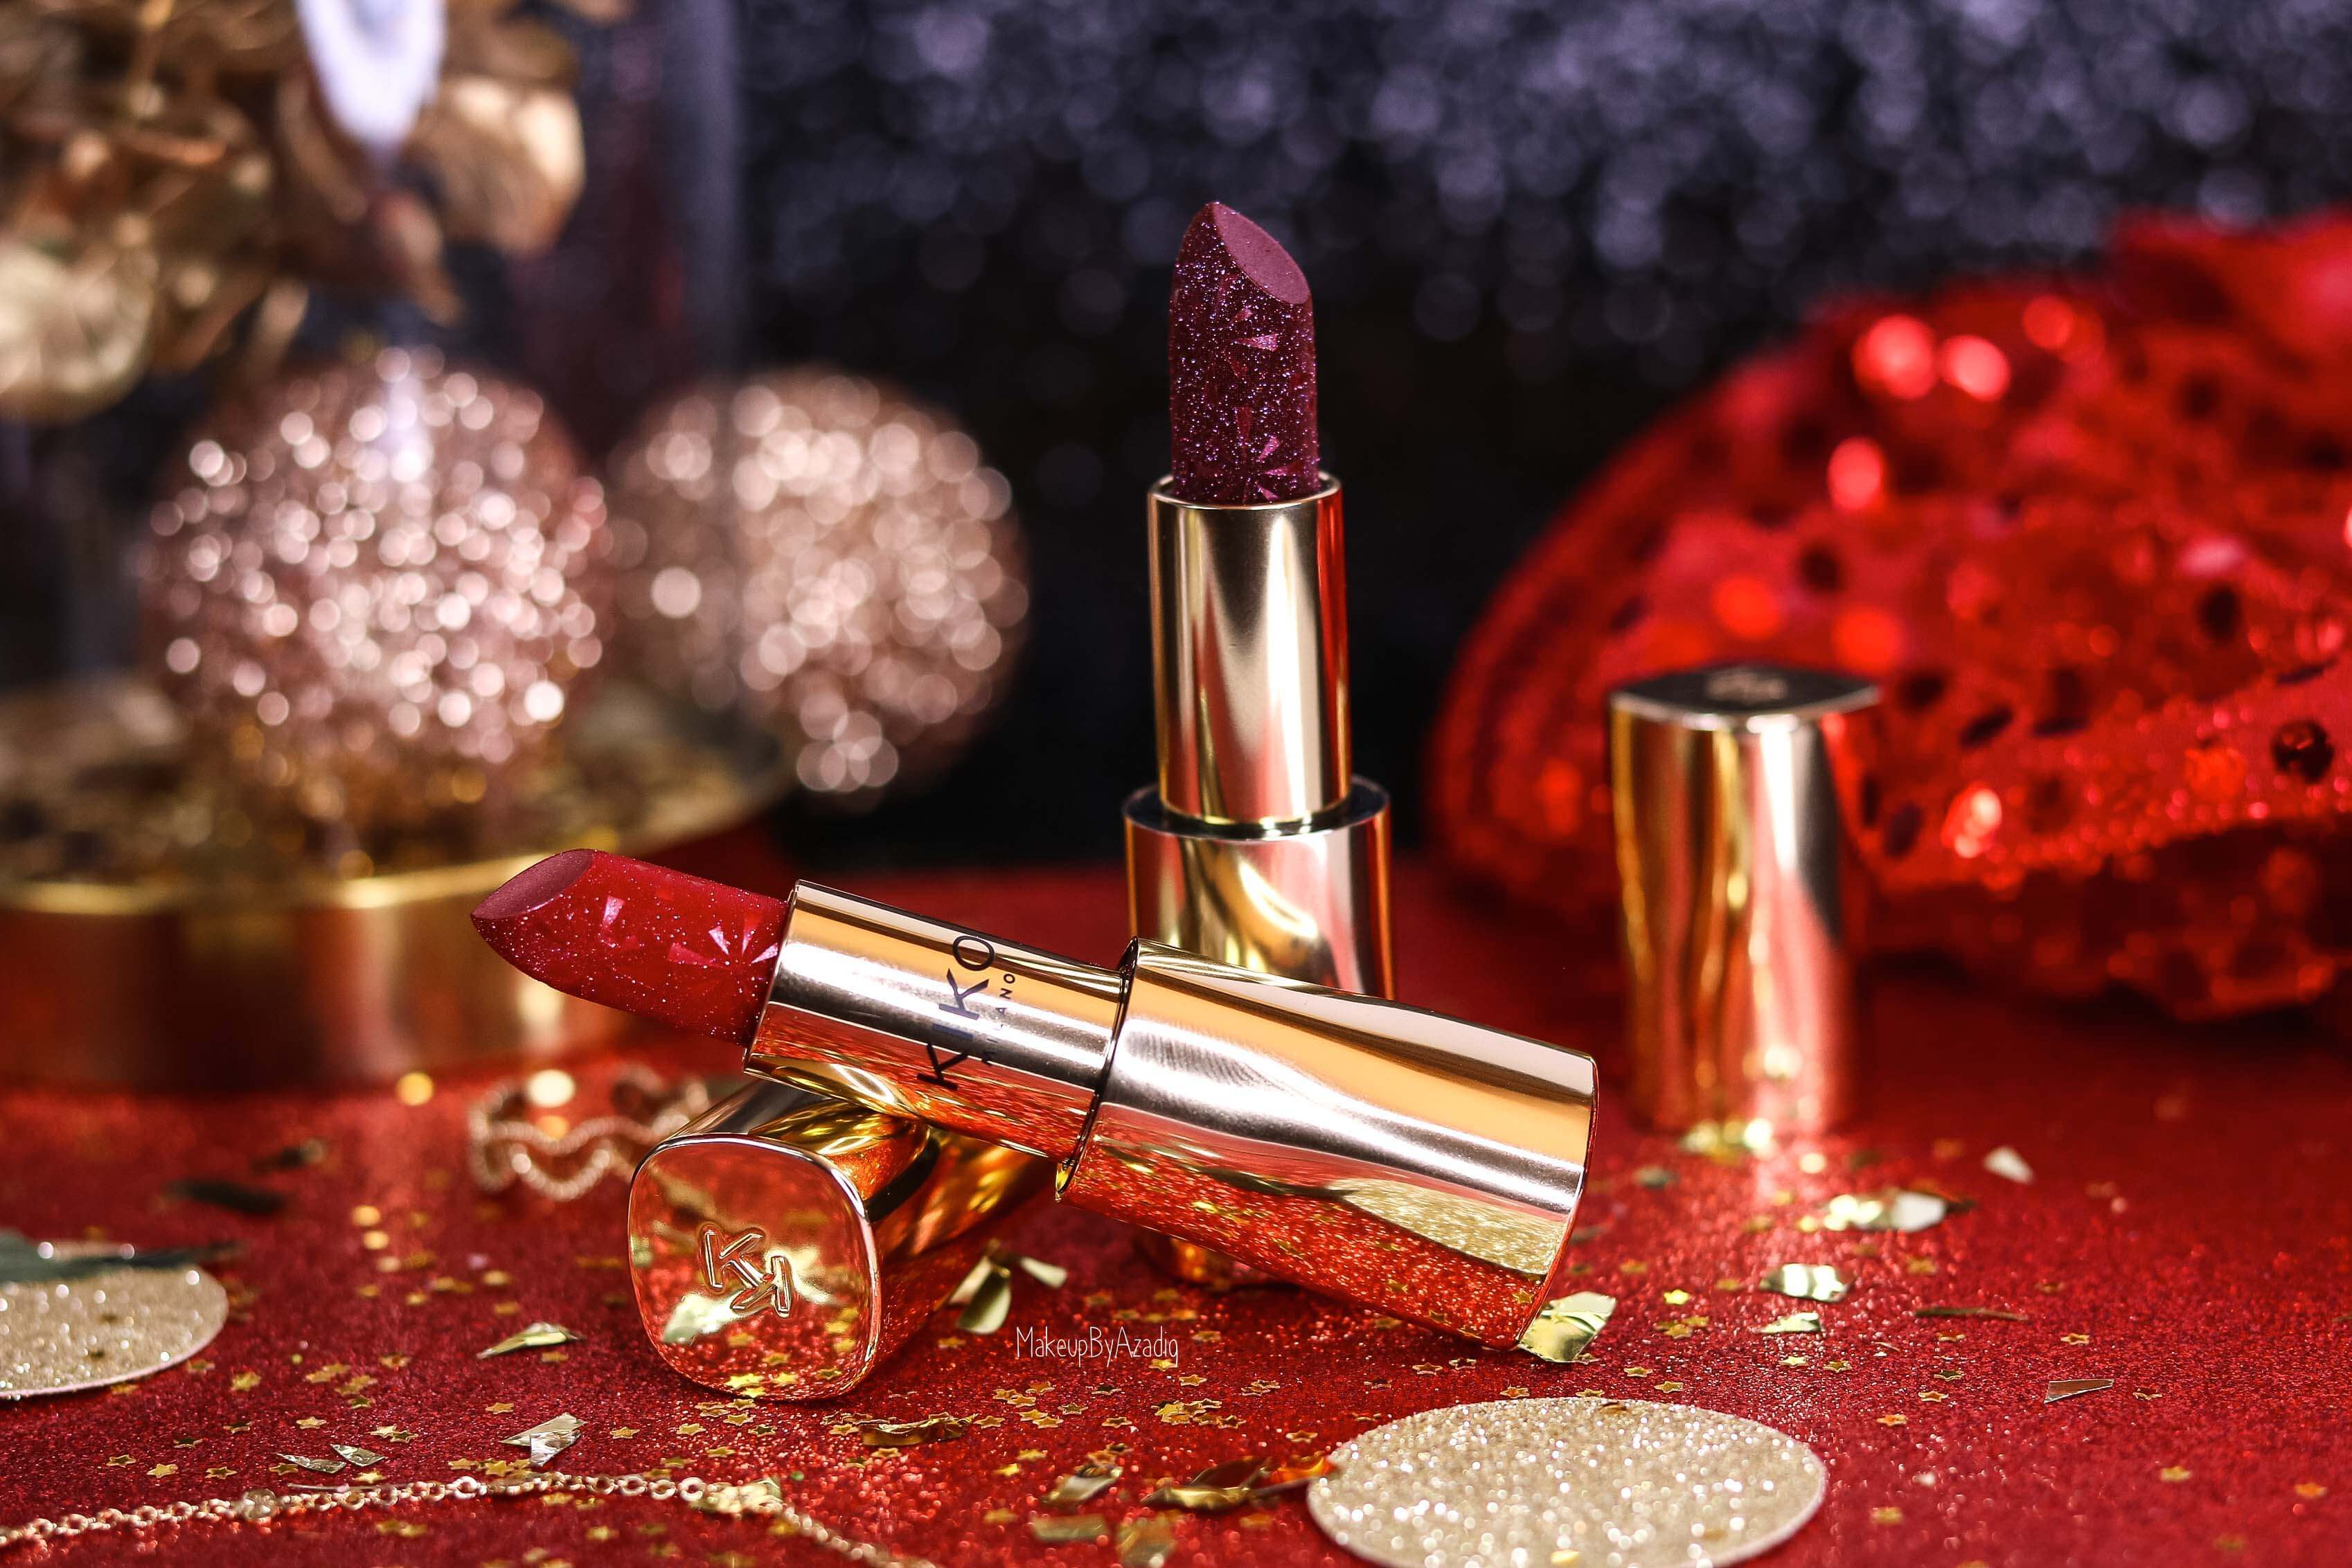 revue-collection-noel-kiko-milano-troyes-magical-holiday-rouge-levres-fard-paupieres-makeupbyazadig-avis-prix-swatch-paillete-2019-metallise